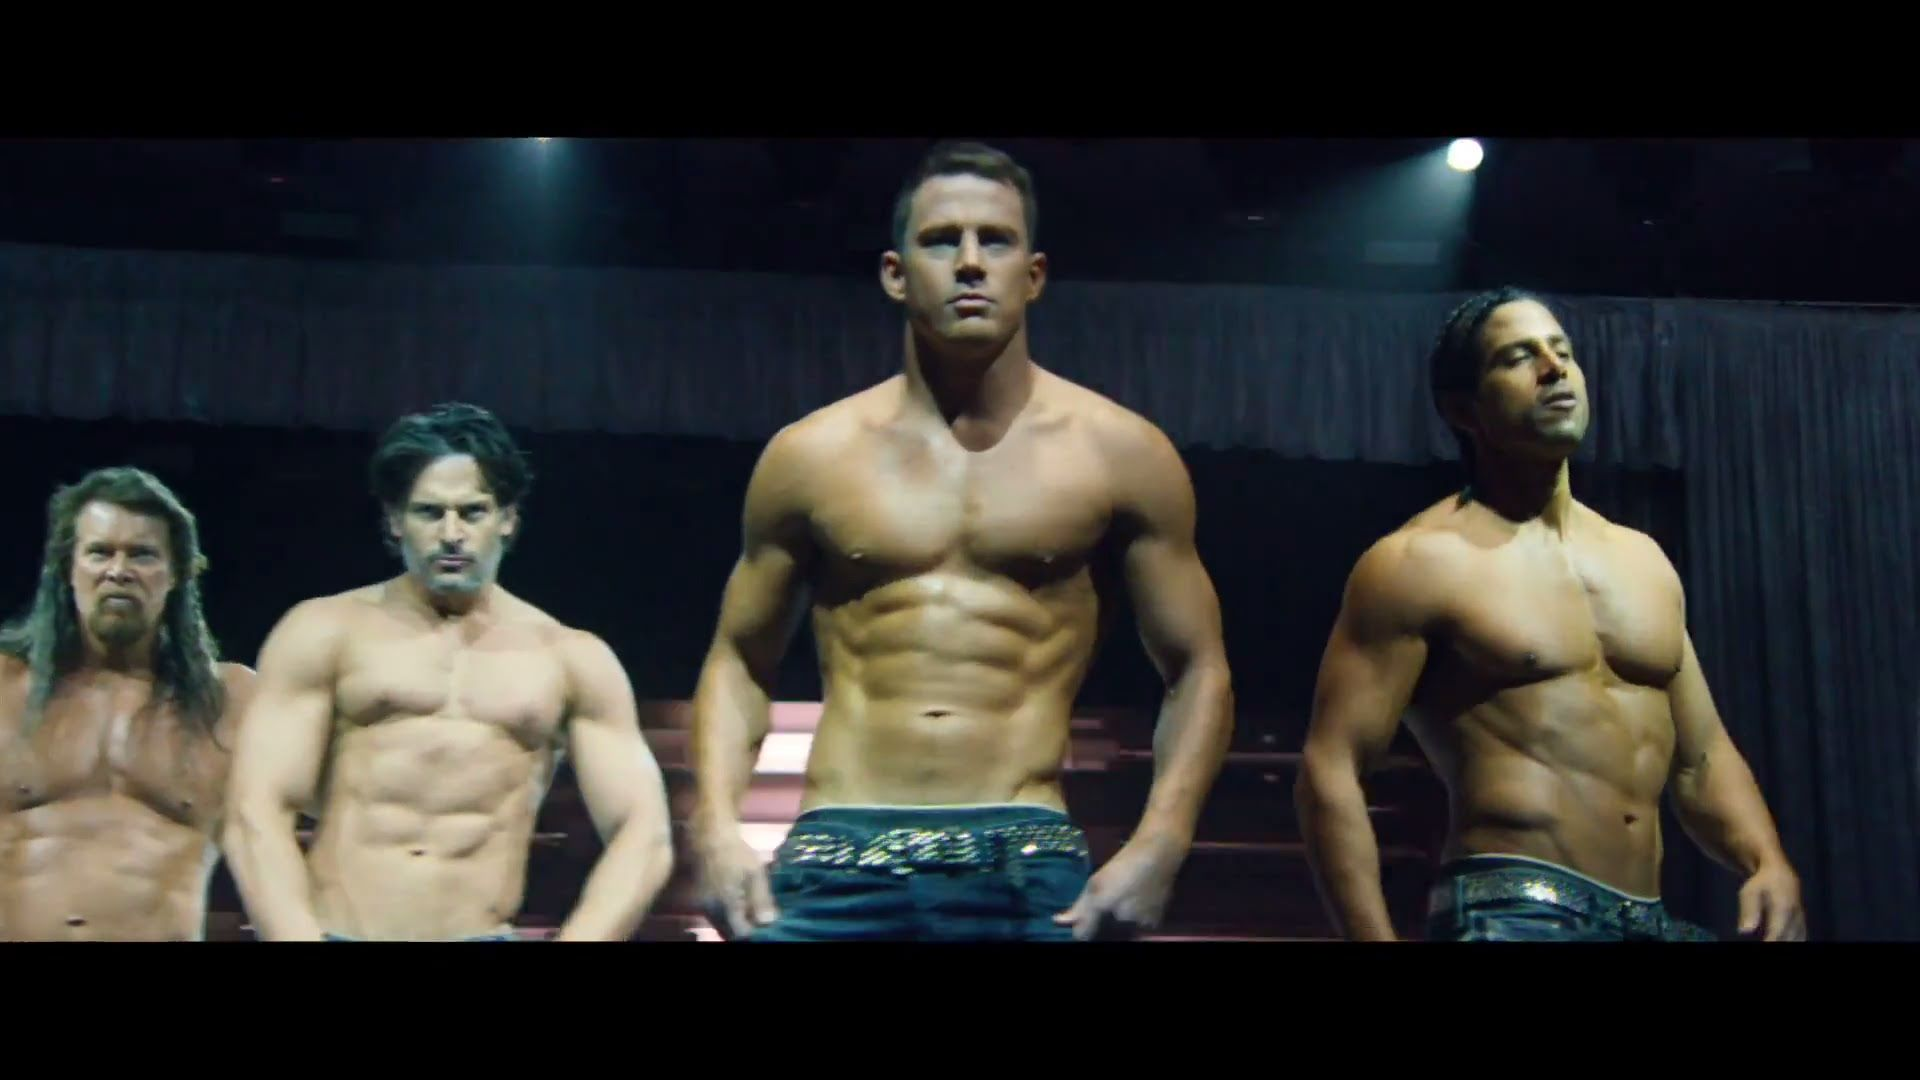 Hd Game Wallpapers 920 519 Xxl Images Wallpapers 42 Wallpapers Adorable Wallpapers Channing Tatum Magic Mike Magic Mike Xxl Magic Mike